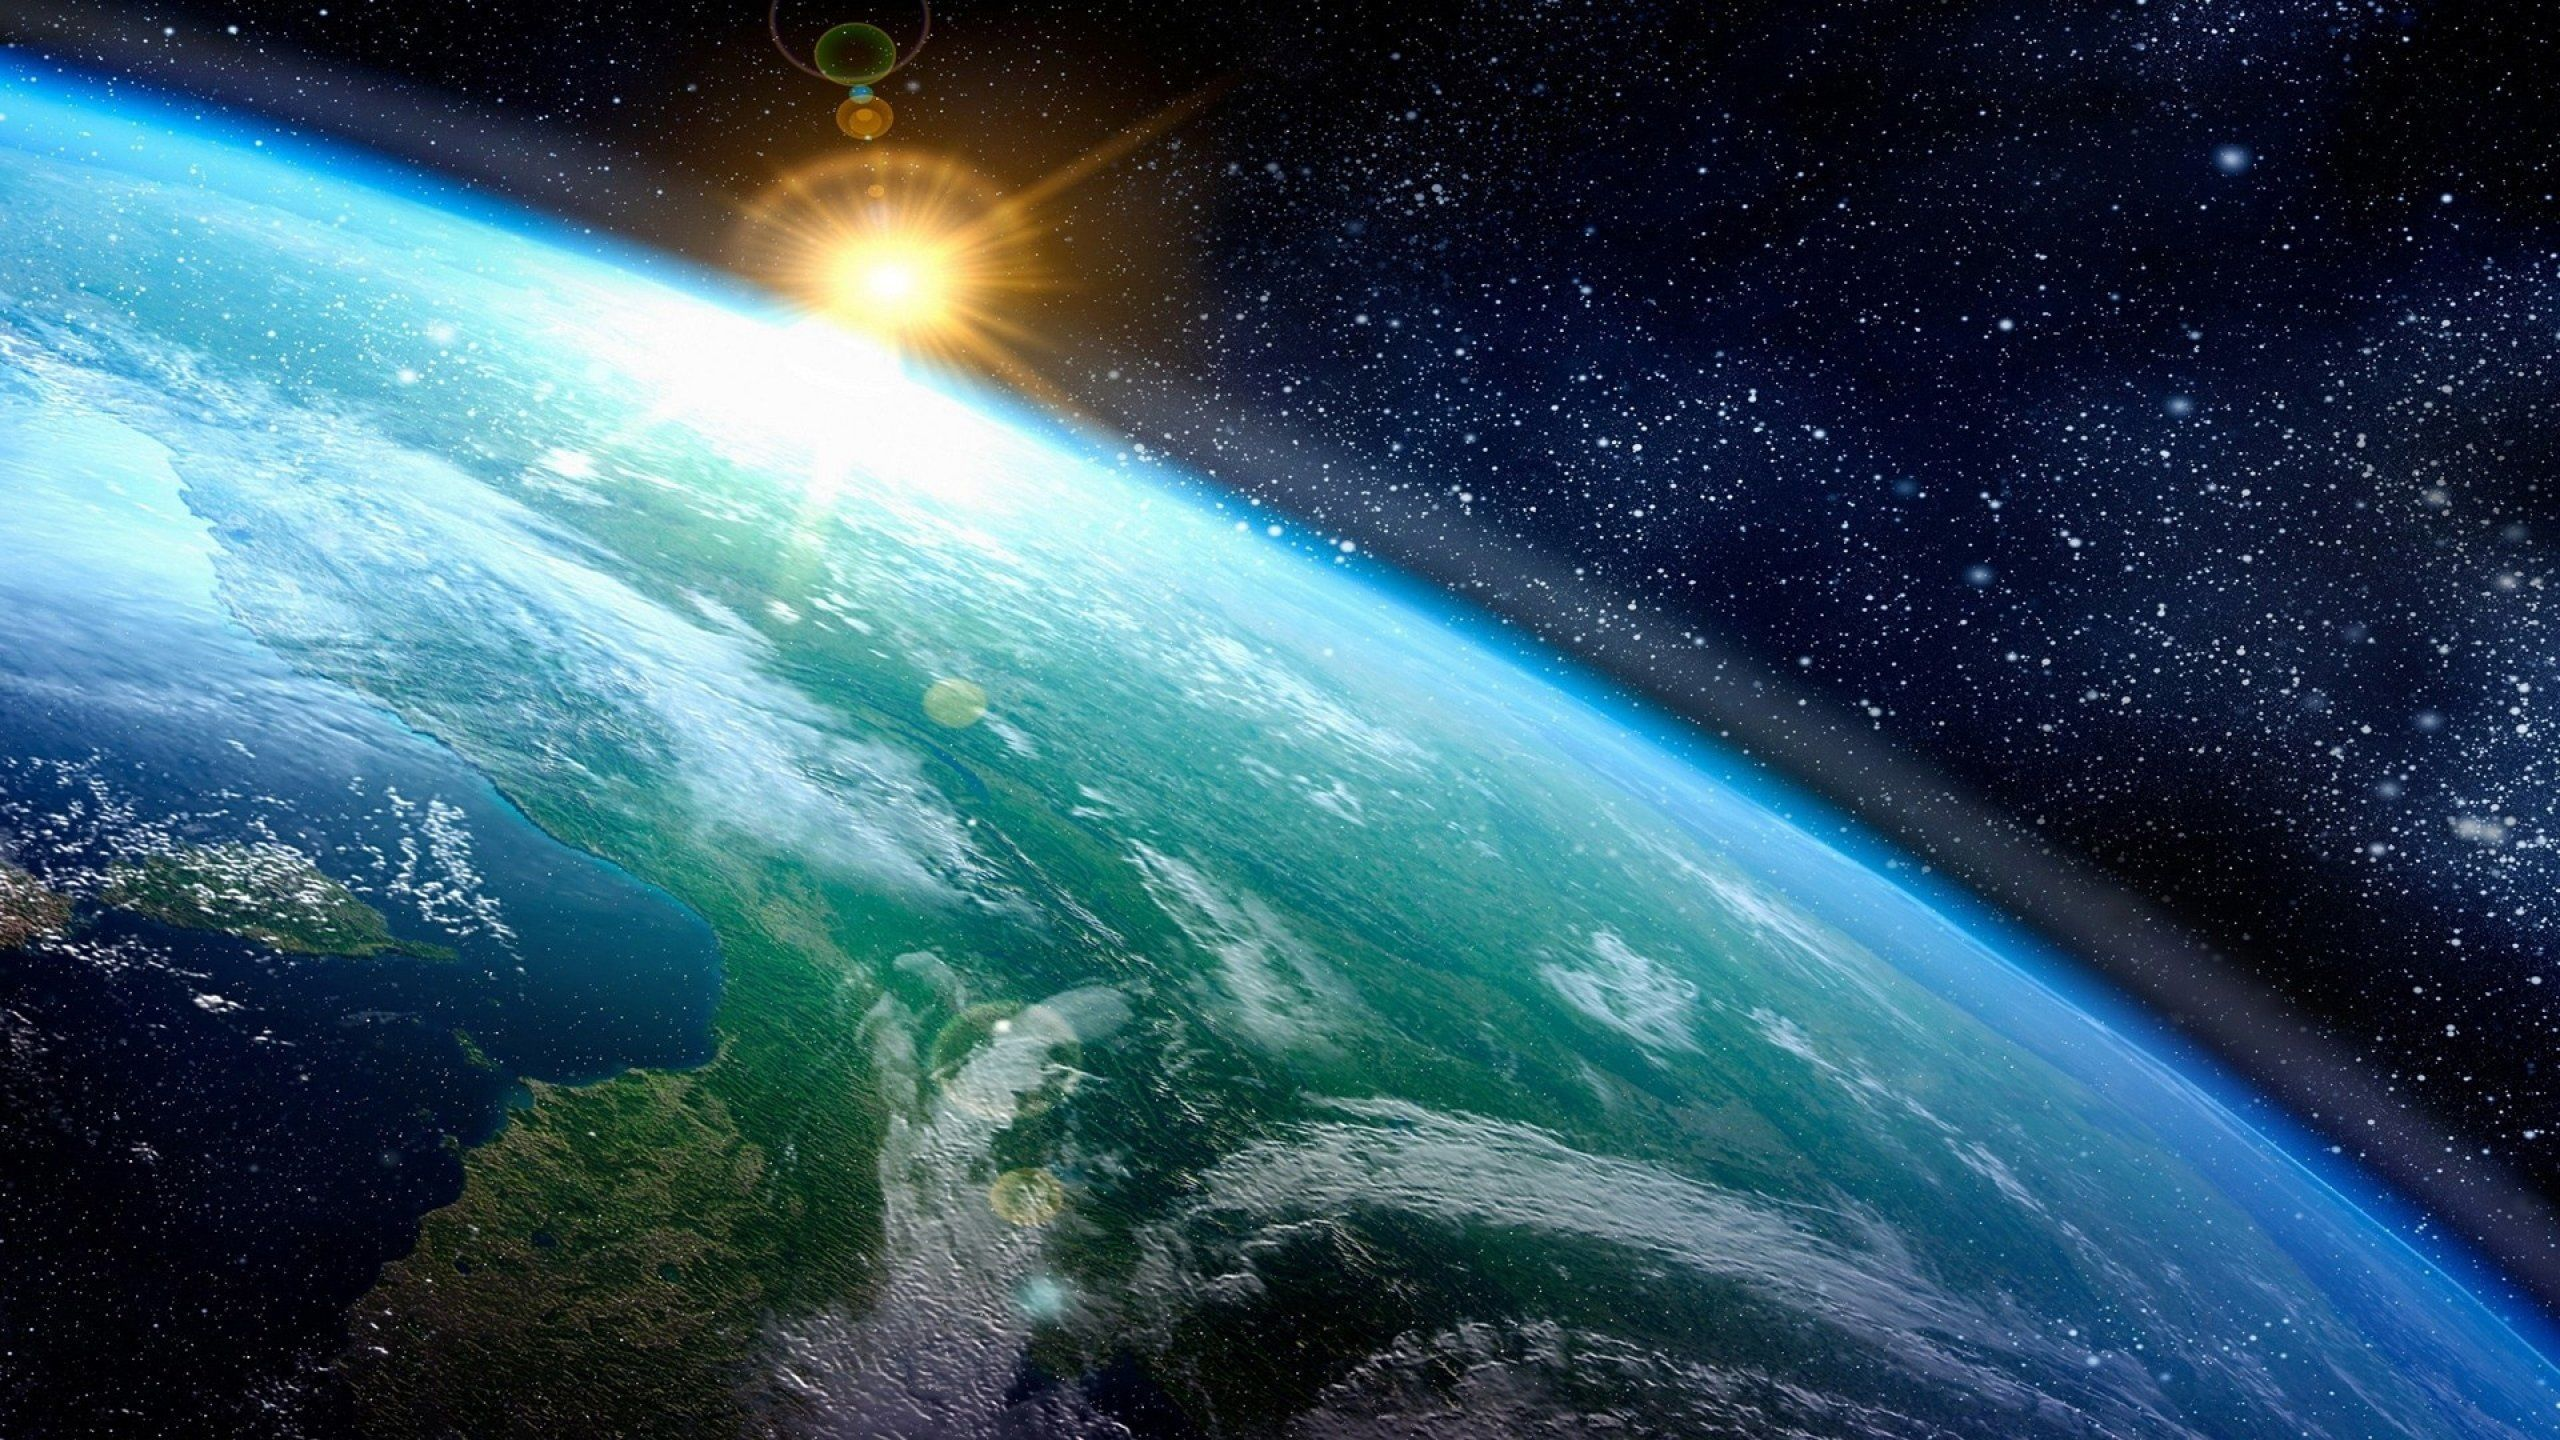 Earth From Outer Space Wallpapers - Top Free Earth From Outer Space  Backgrounds - WallpaperAccess